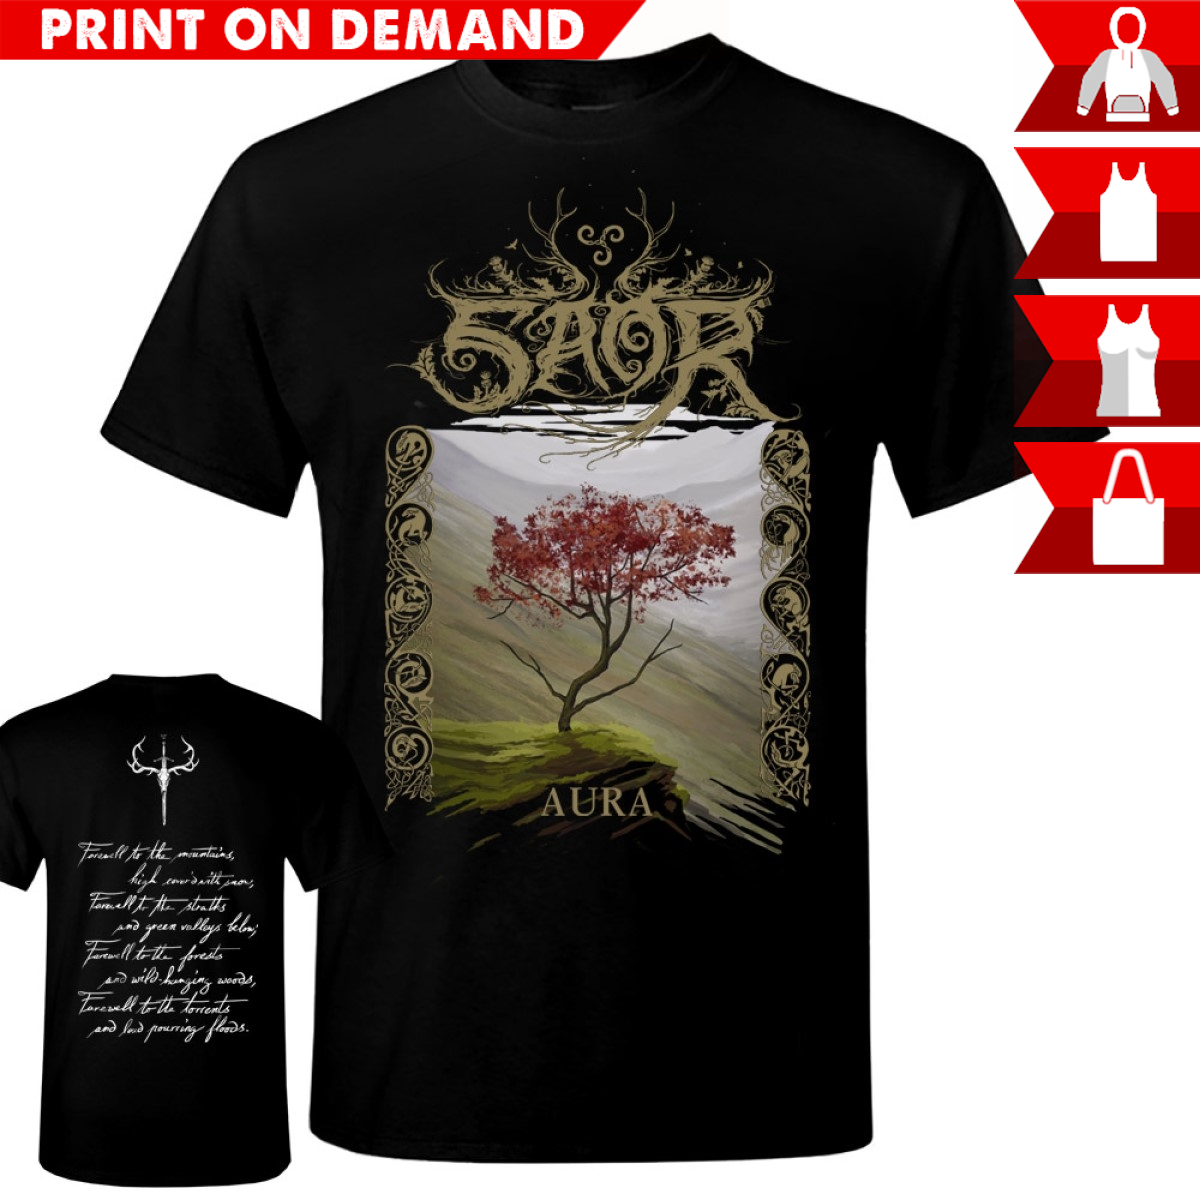 Aura - Print on demand